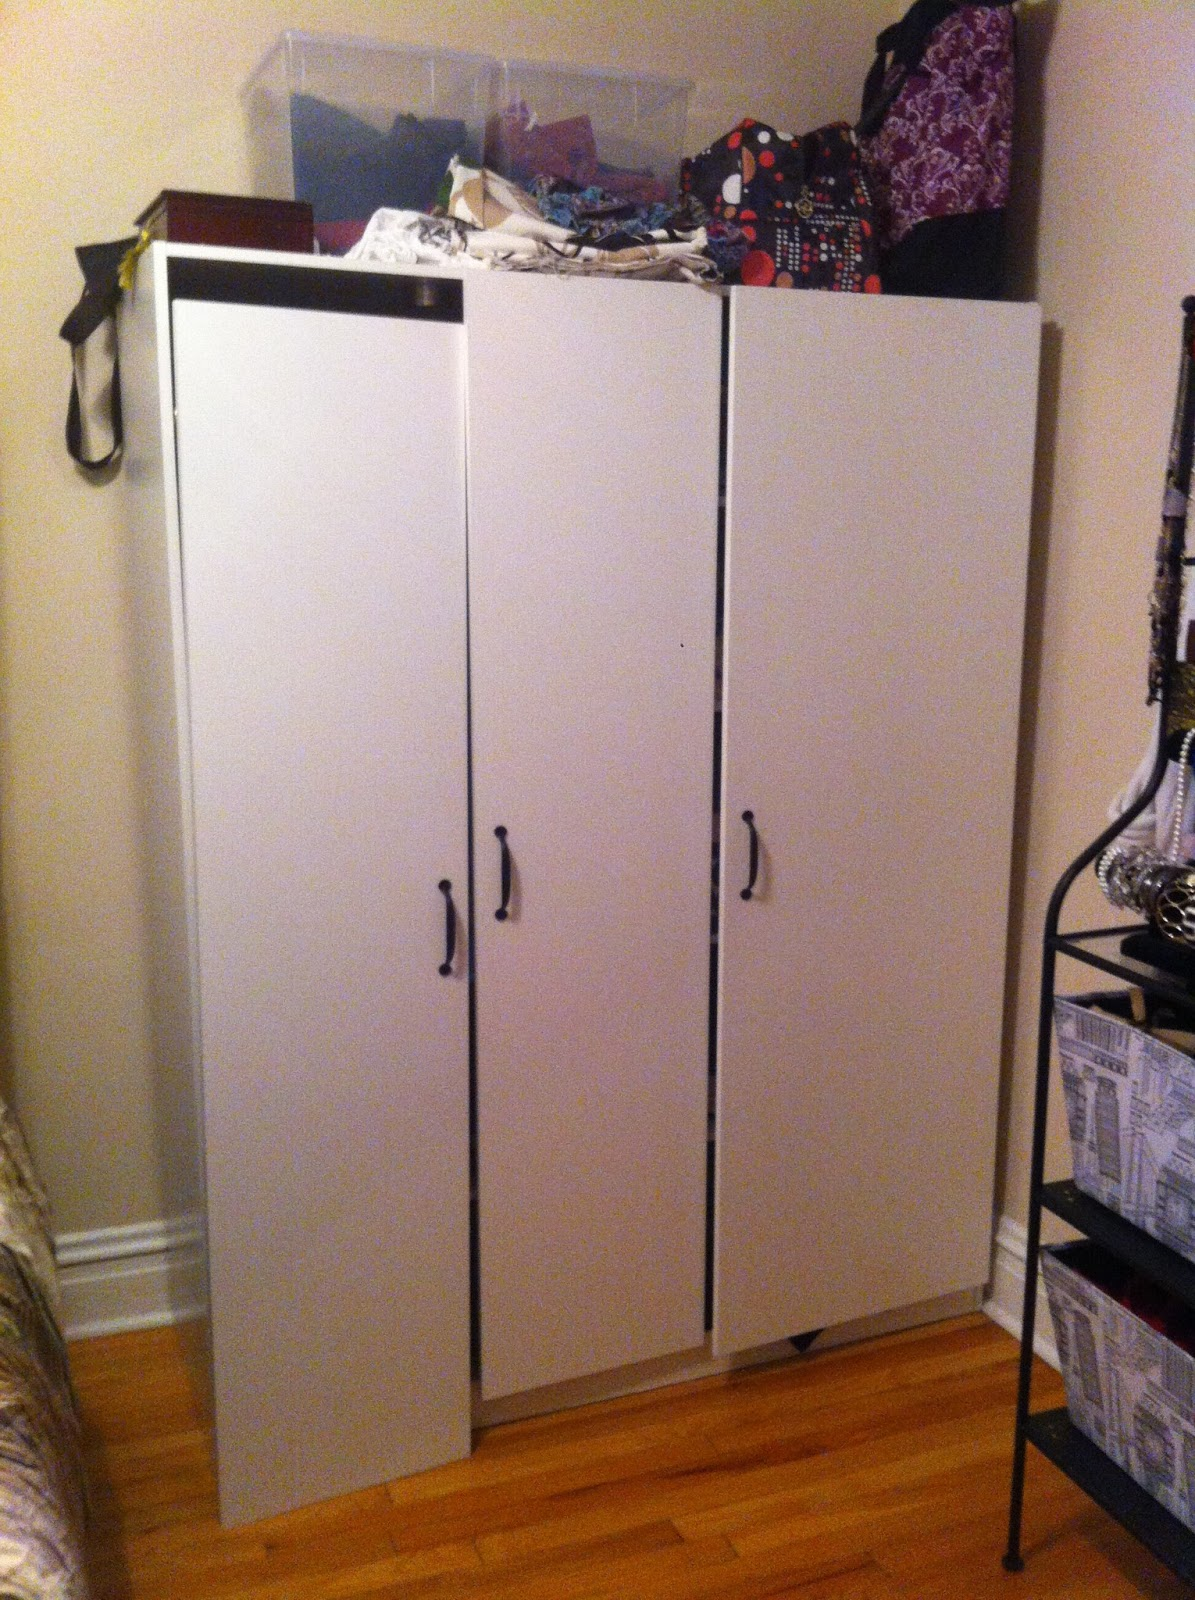 Ikea Ideas Studio Apartment ~ Living Large in Small Spaces Latest IKEA hack DOMBAS Wardrobe